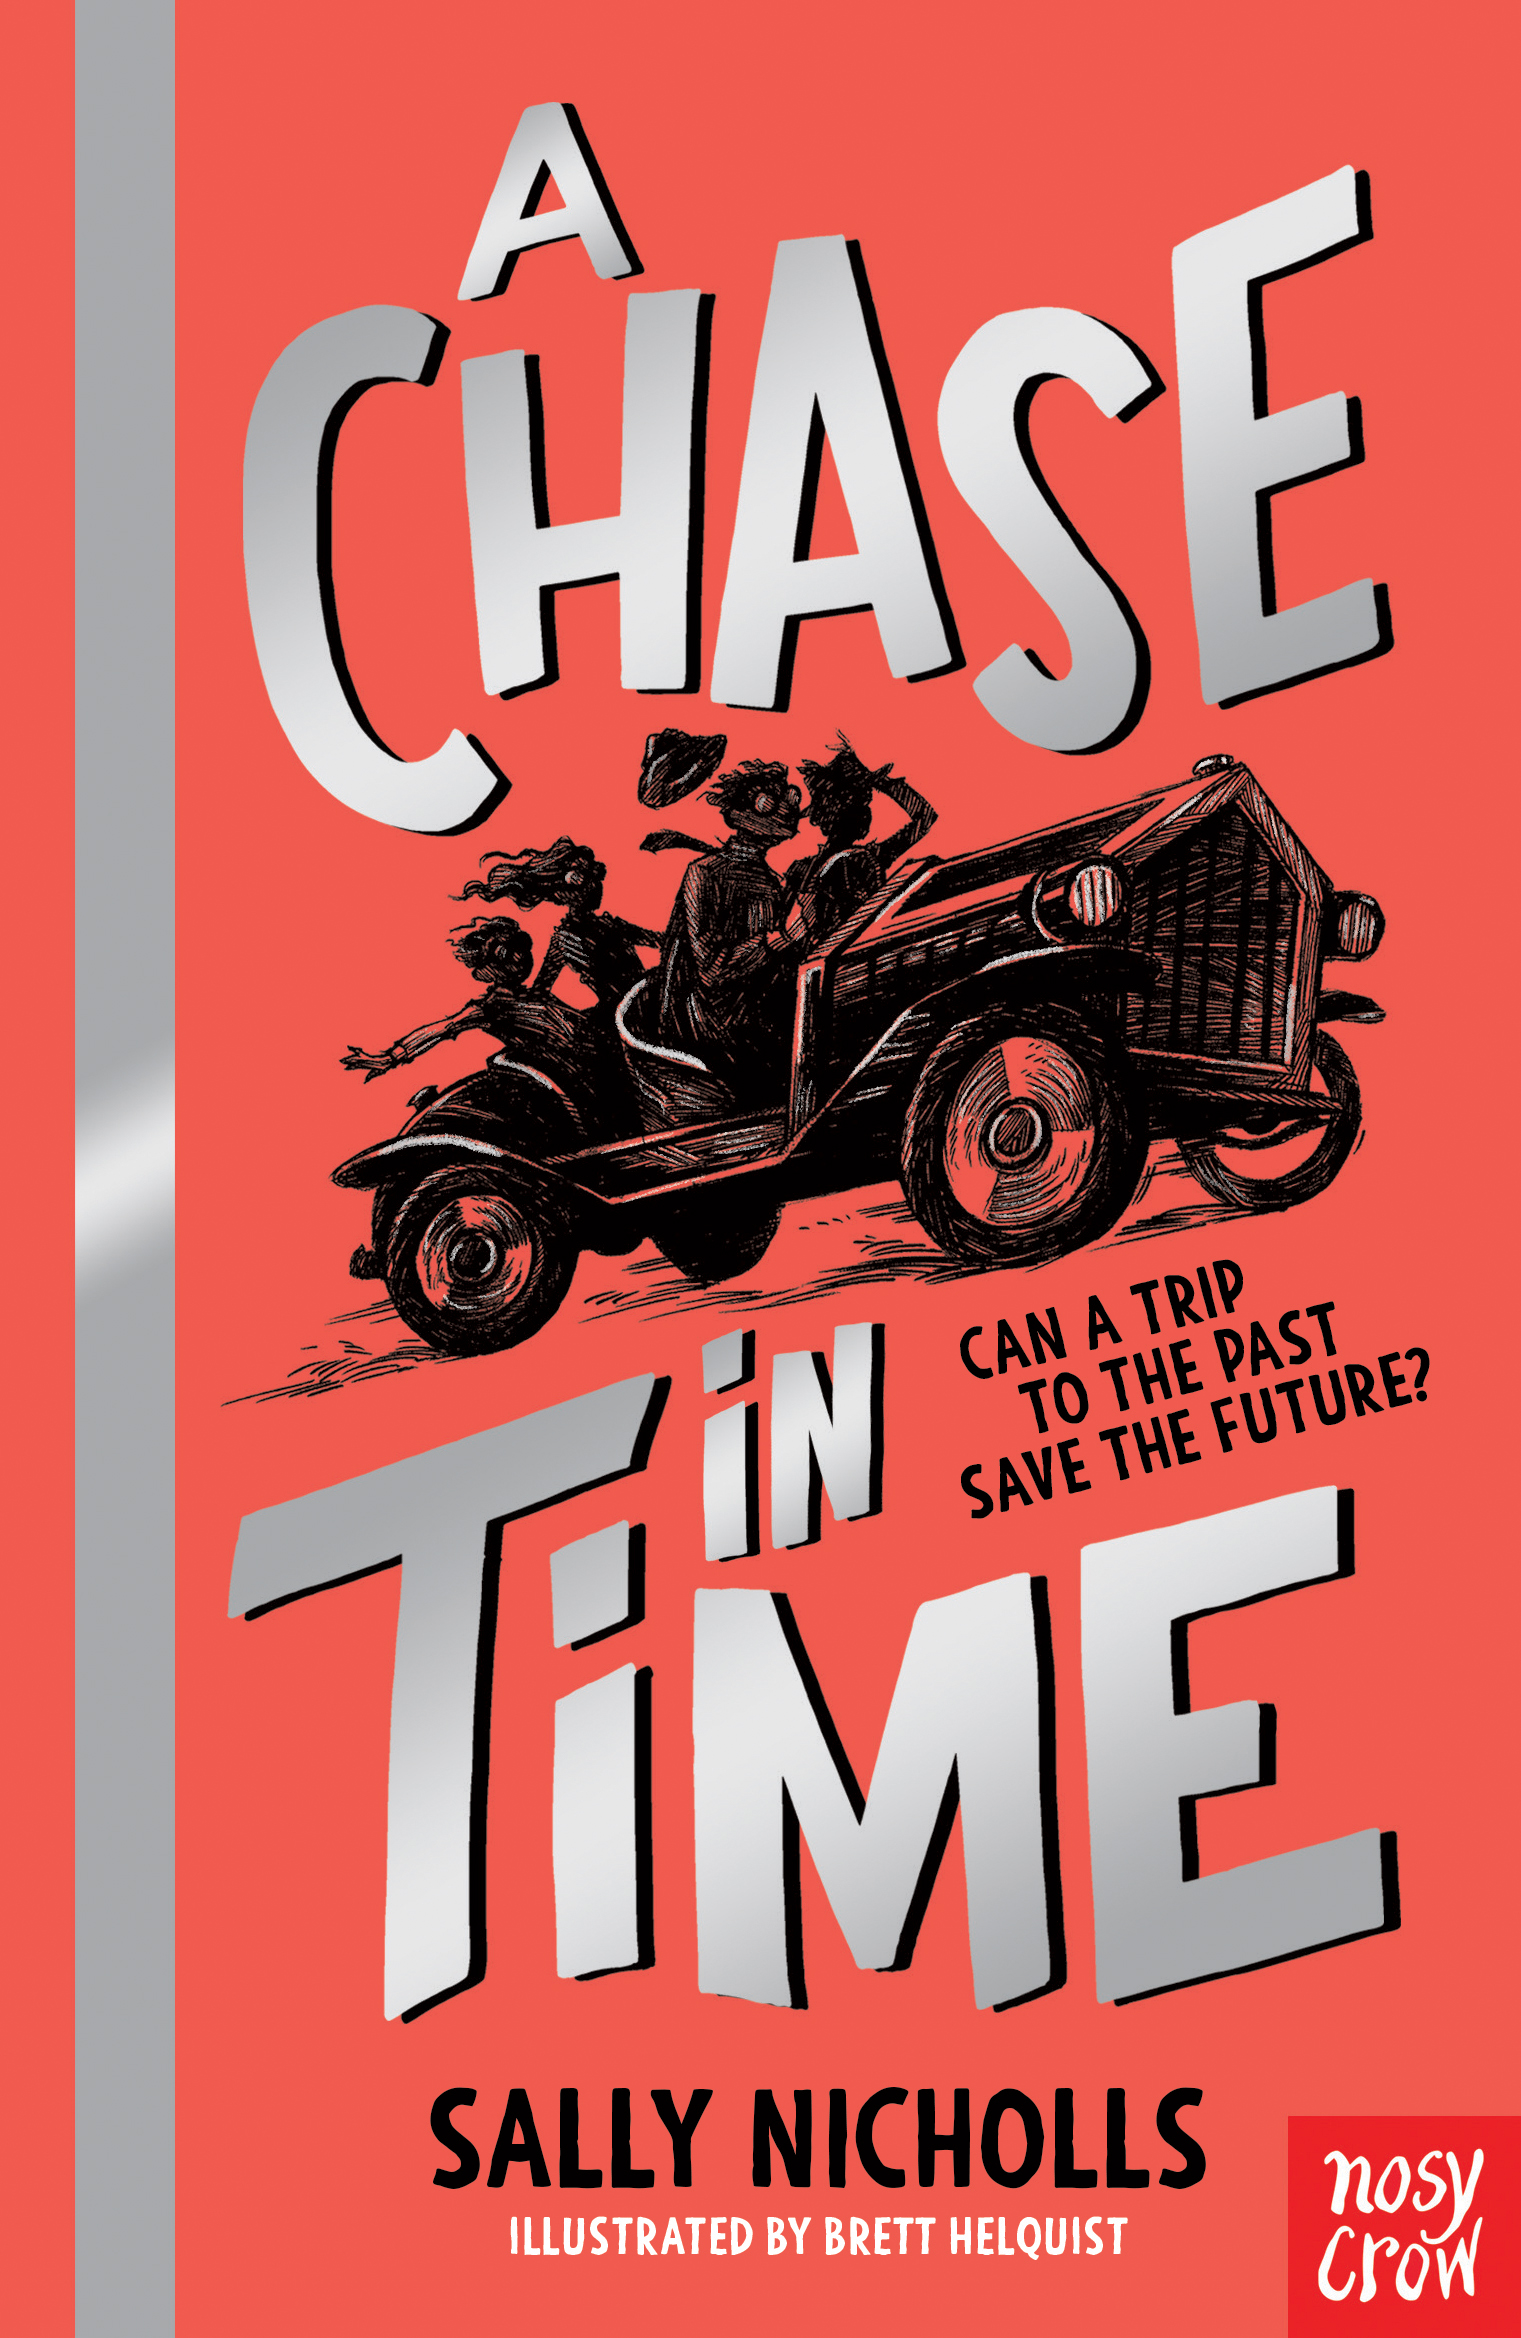 A-Chase-In-Time-213778-1.jpg